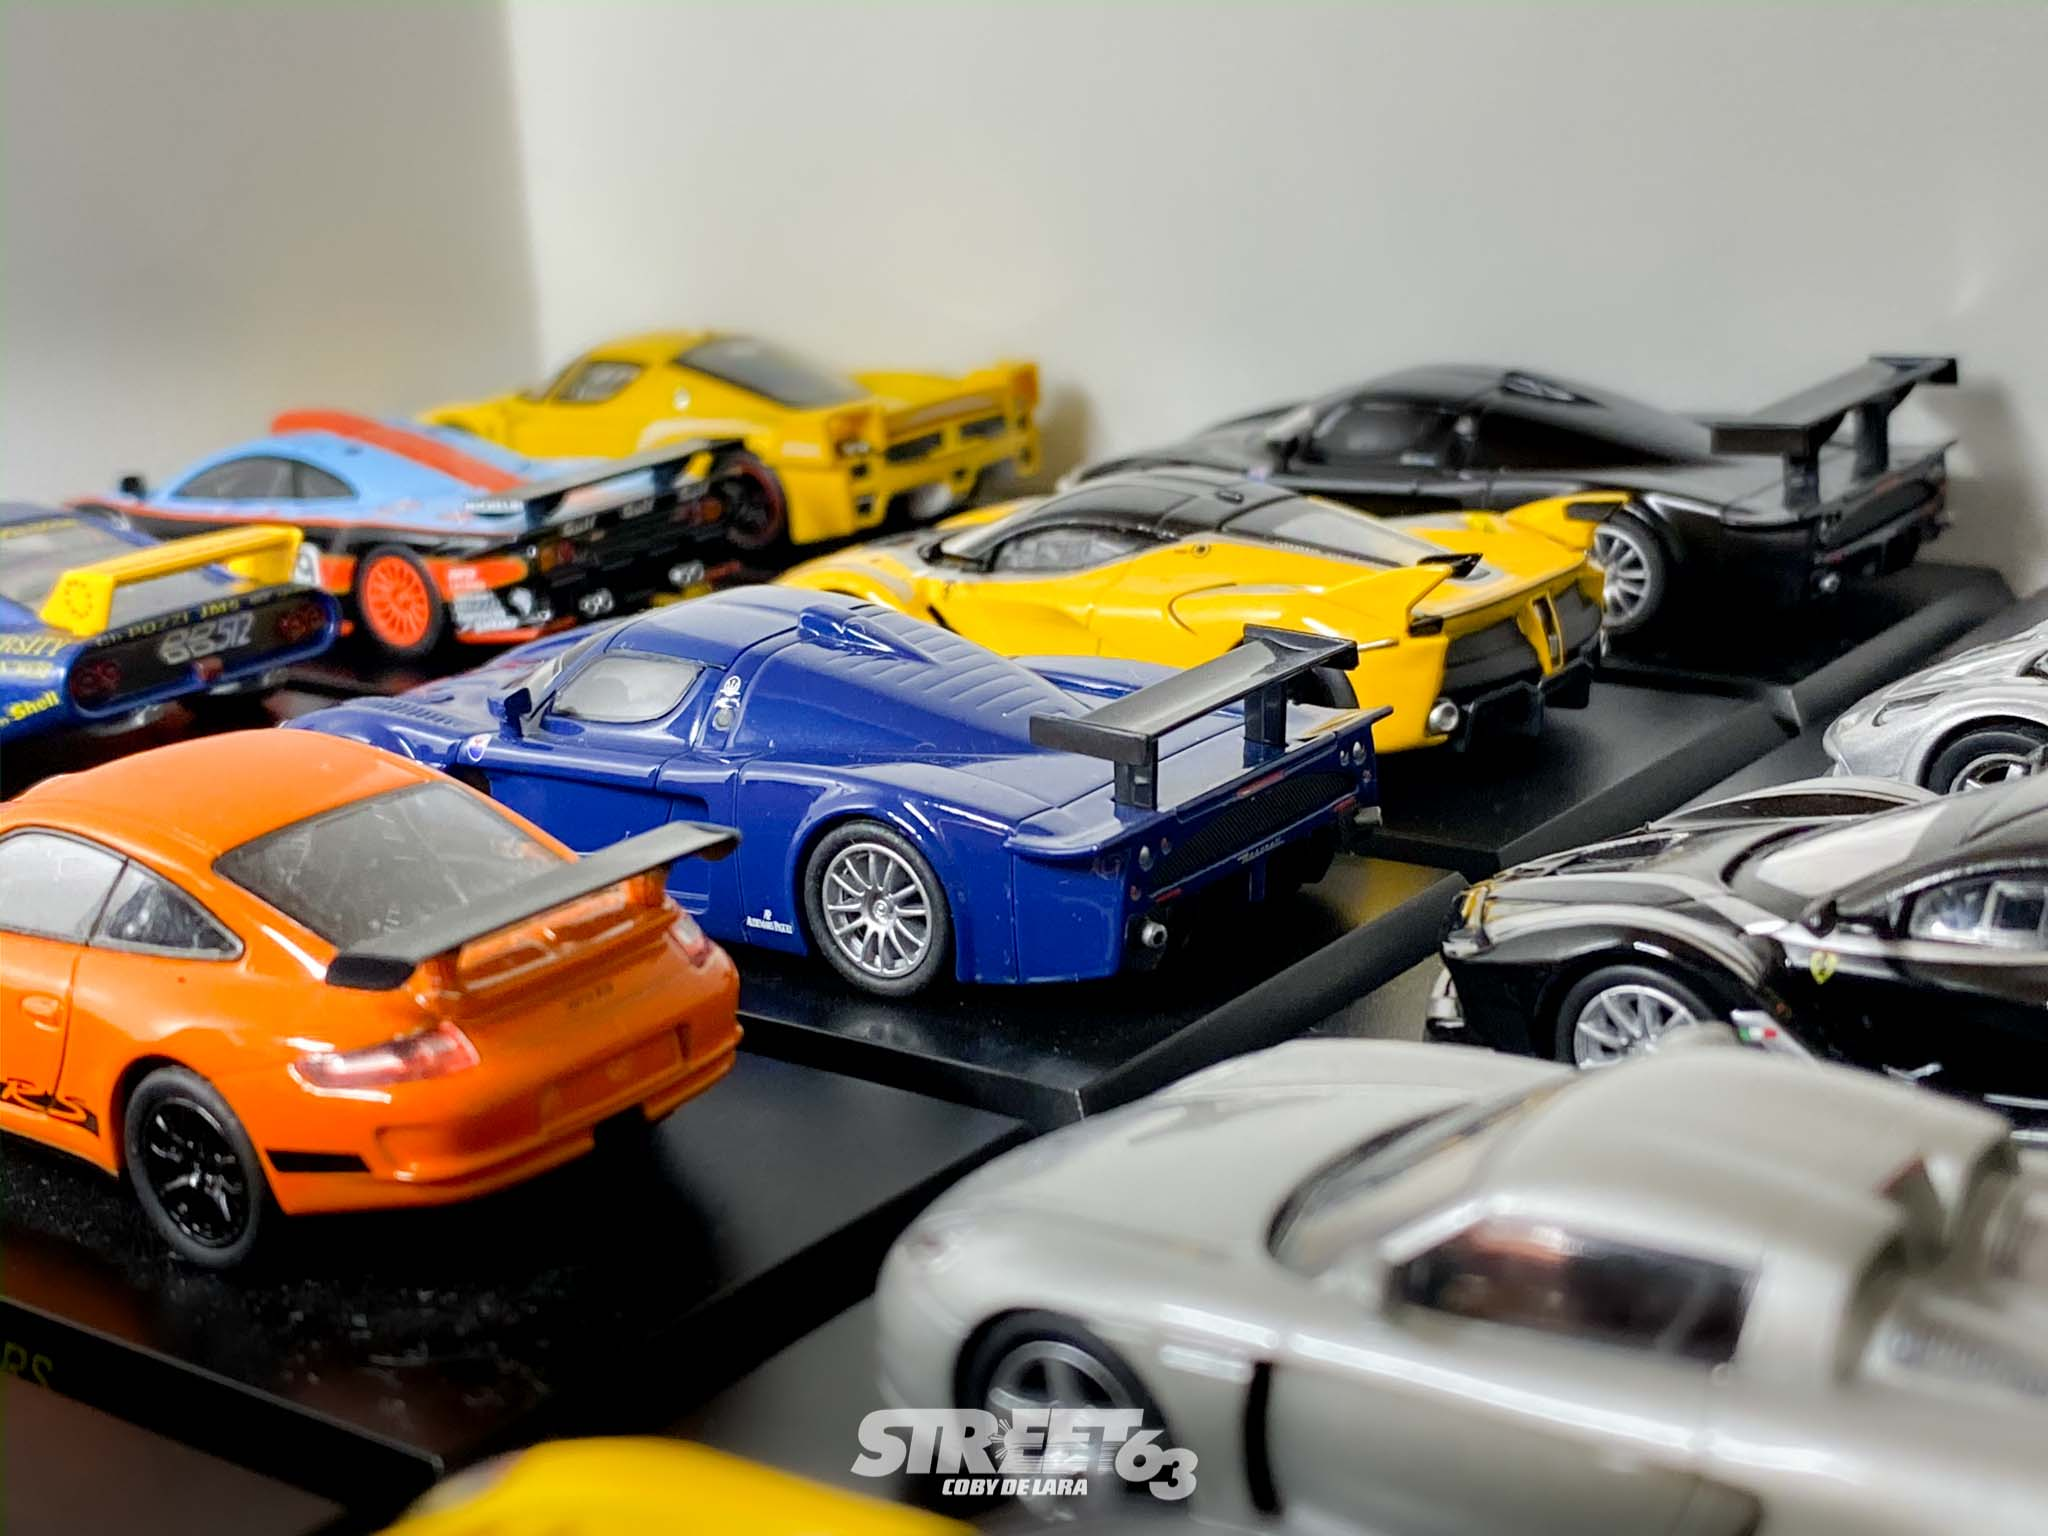 Mini63: The Street63 Diecast Collection 1